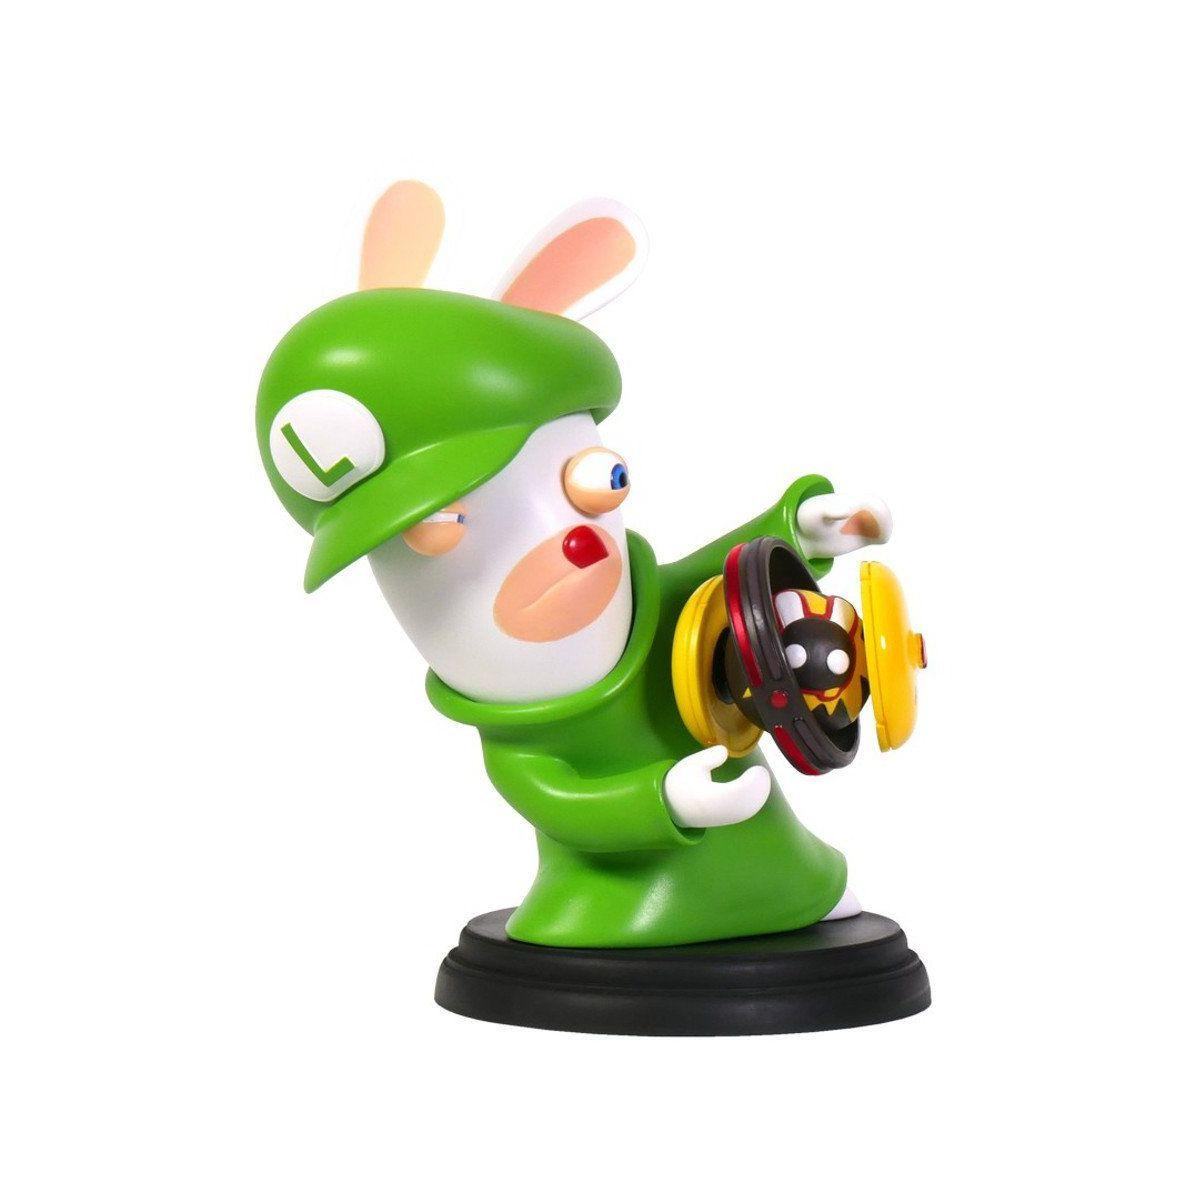 Figurine ubisoft mario + the lapins cr�t - 2% de remise imm�diate avec le code : noel2 (photo)